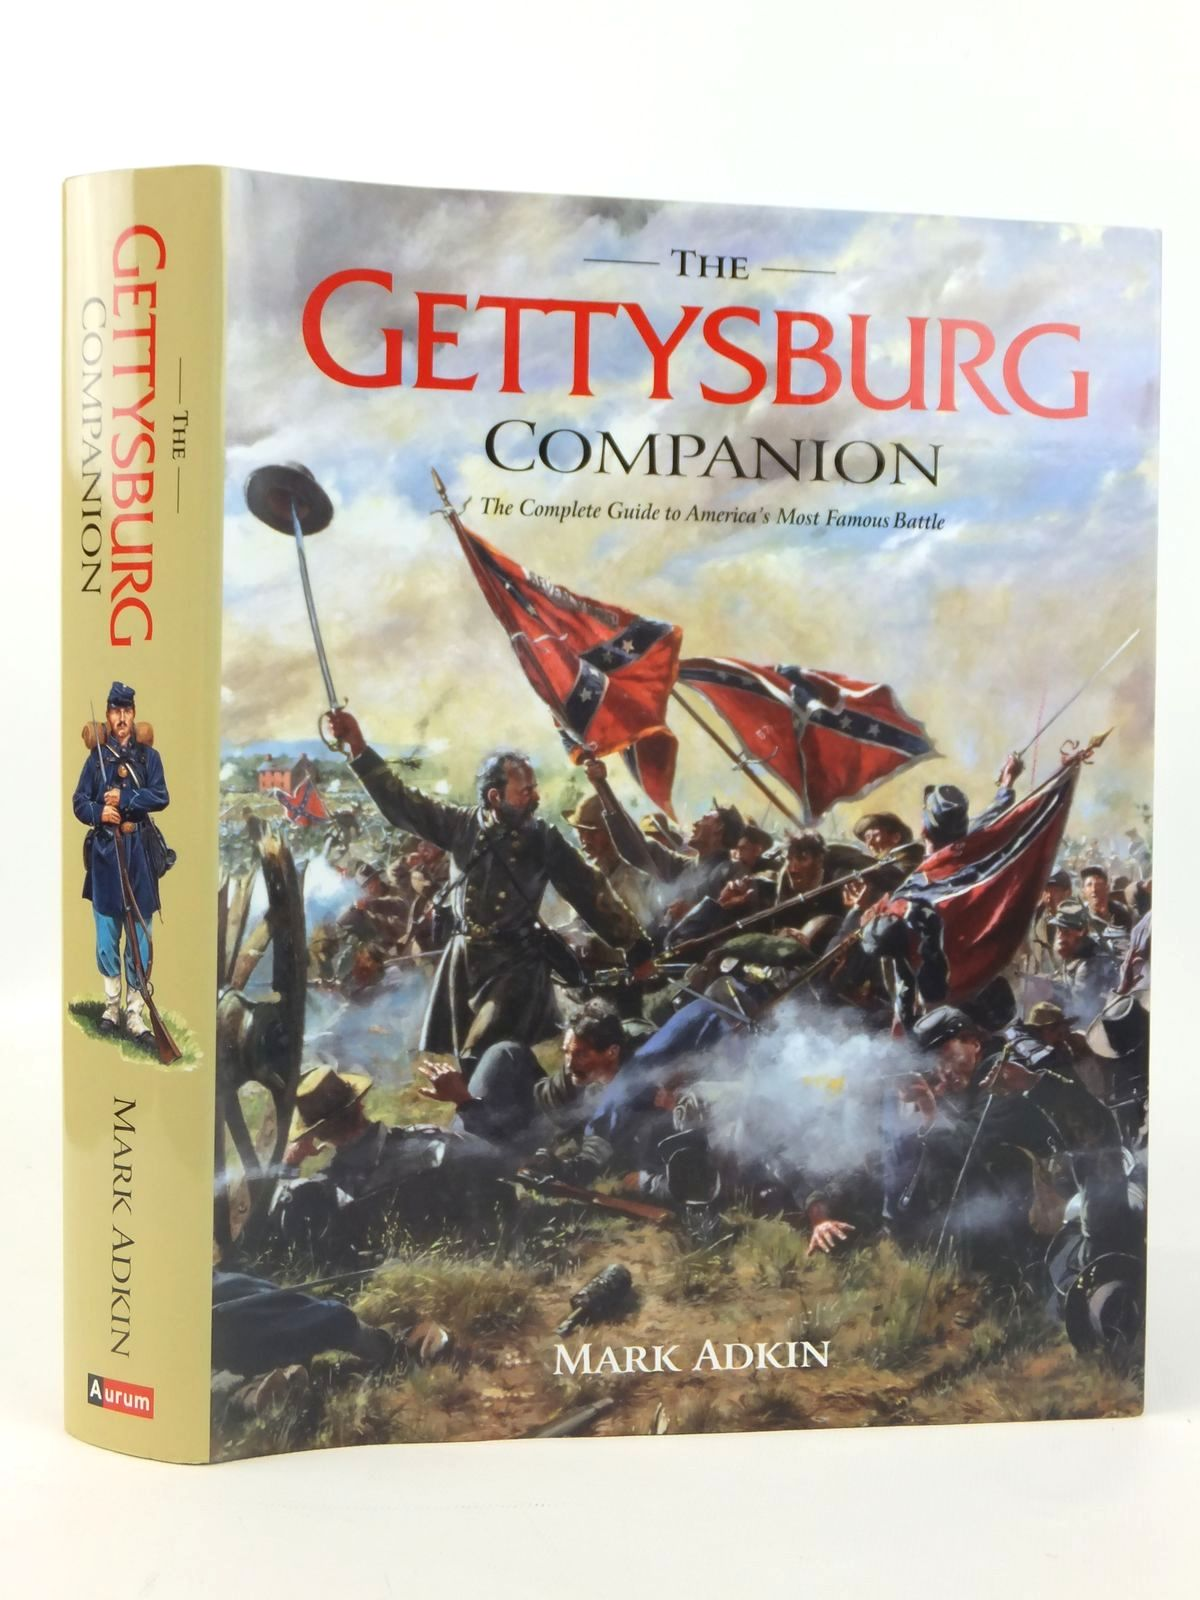 Photo of THE GETTYSBURG COMPANION THE COMPLETE GUIDE TO AMERICA'S MOST FAMOUS BATTLE written by Adkin, Mark published by Aurum Press (STOCK CODE: 2122054)  for sale by Stella & Rose's Books